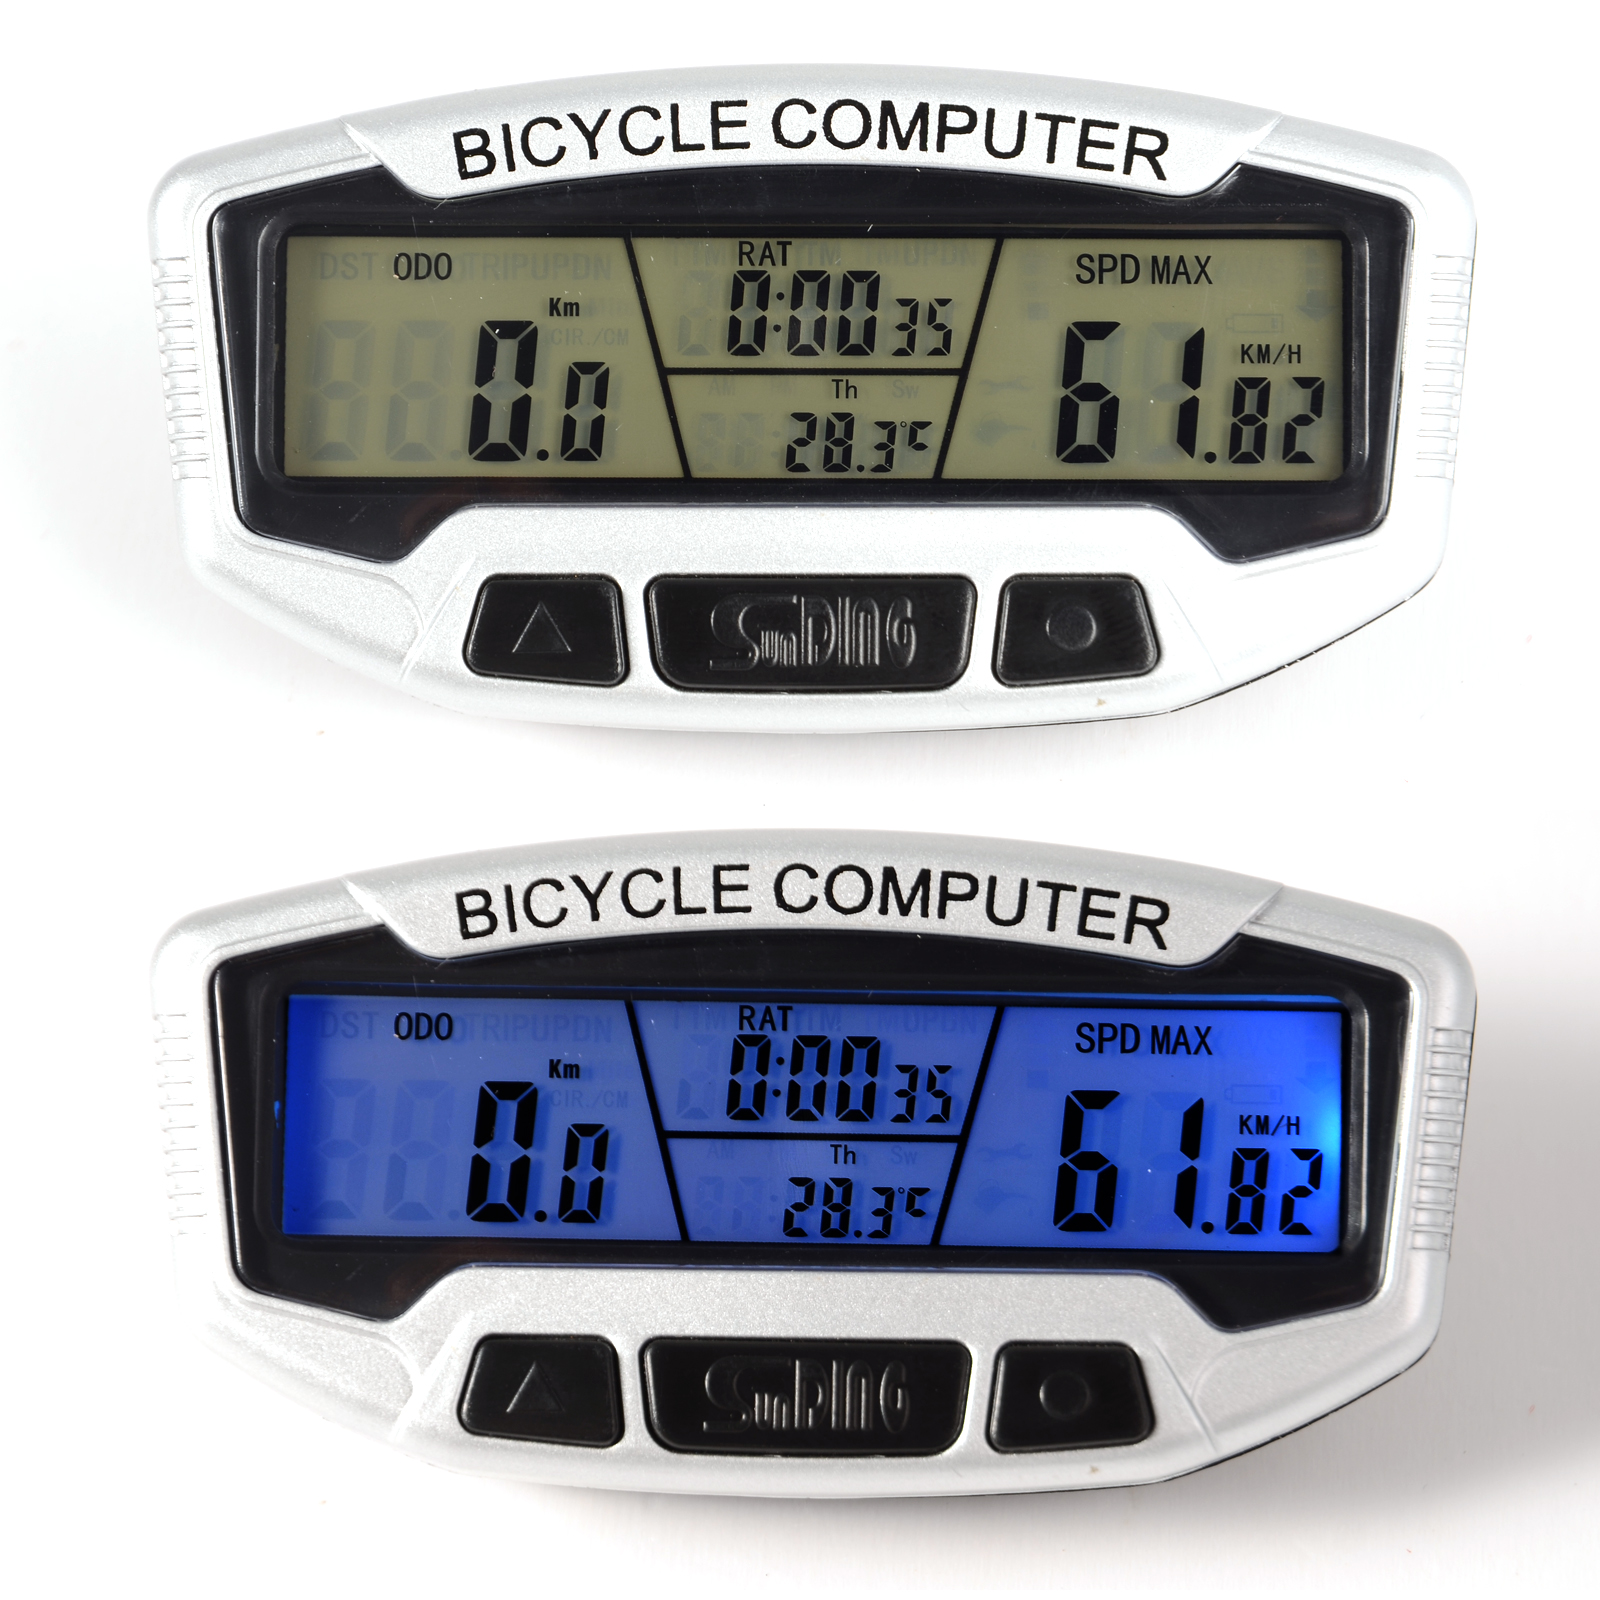 compteur ordinateur velo lcd avec fil kilometrique vitesse etanche odometre ebay. Black Bedroom Furniture Sets. Home Design Ideas